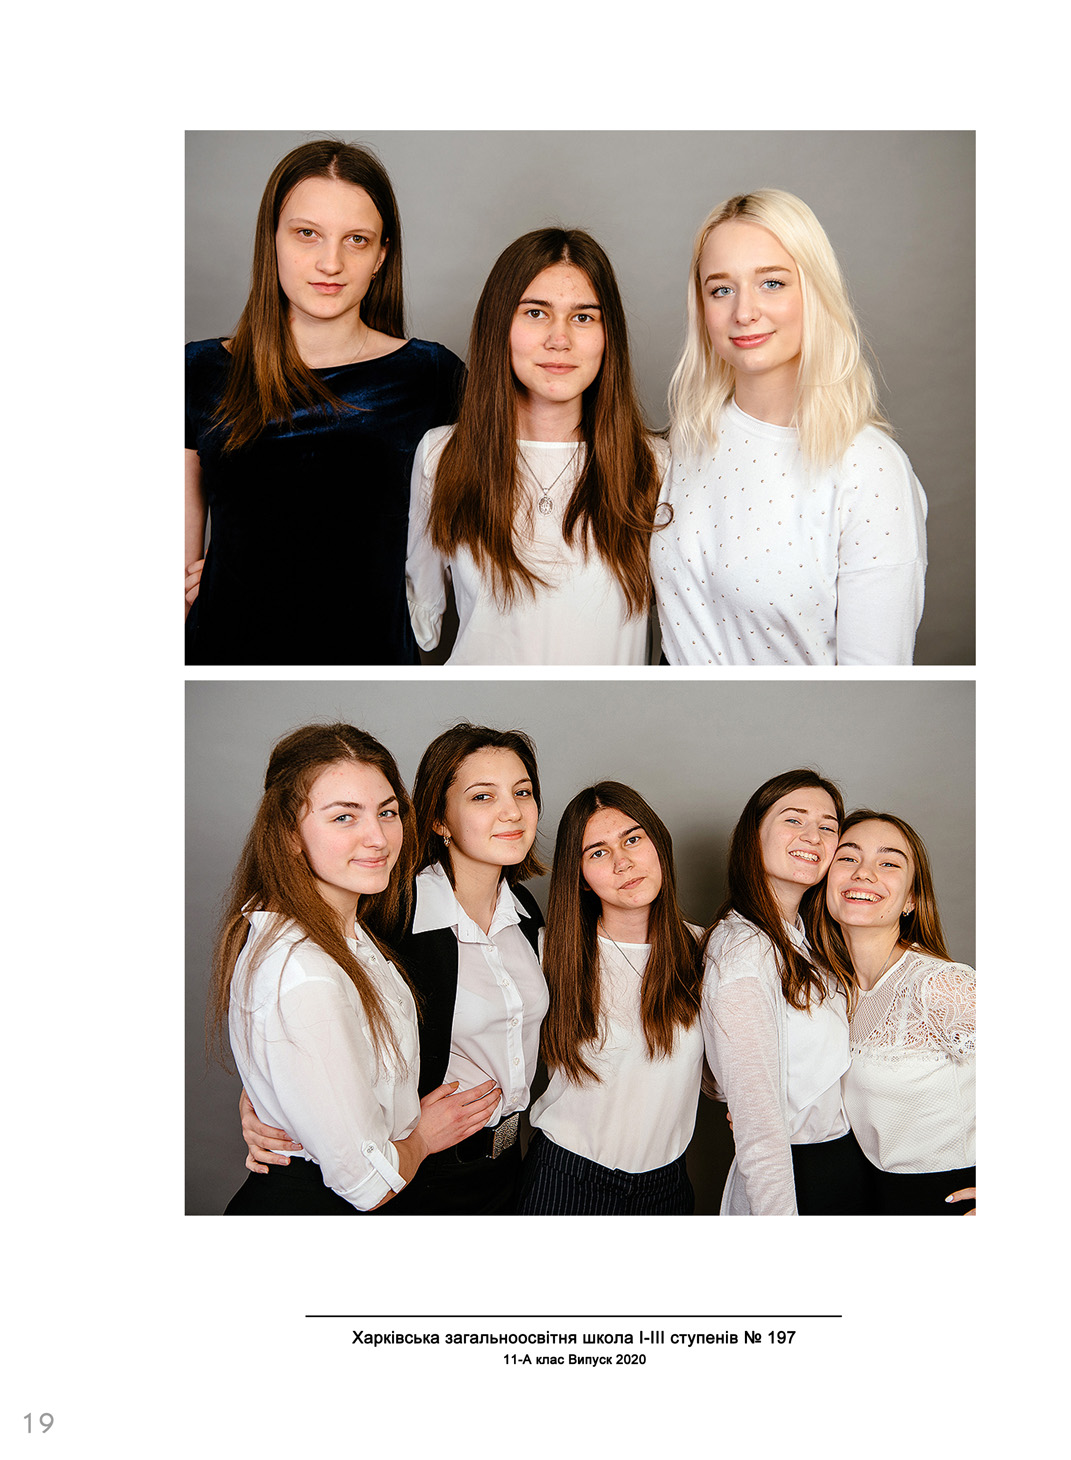 https://school-photo.com.ua/wp-content/uploads/2019/09/19-copy.jpg